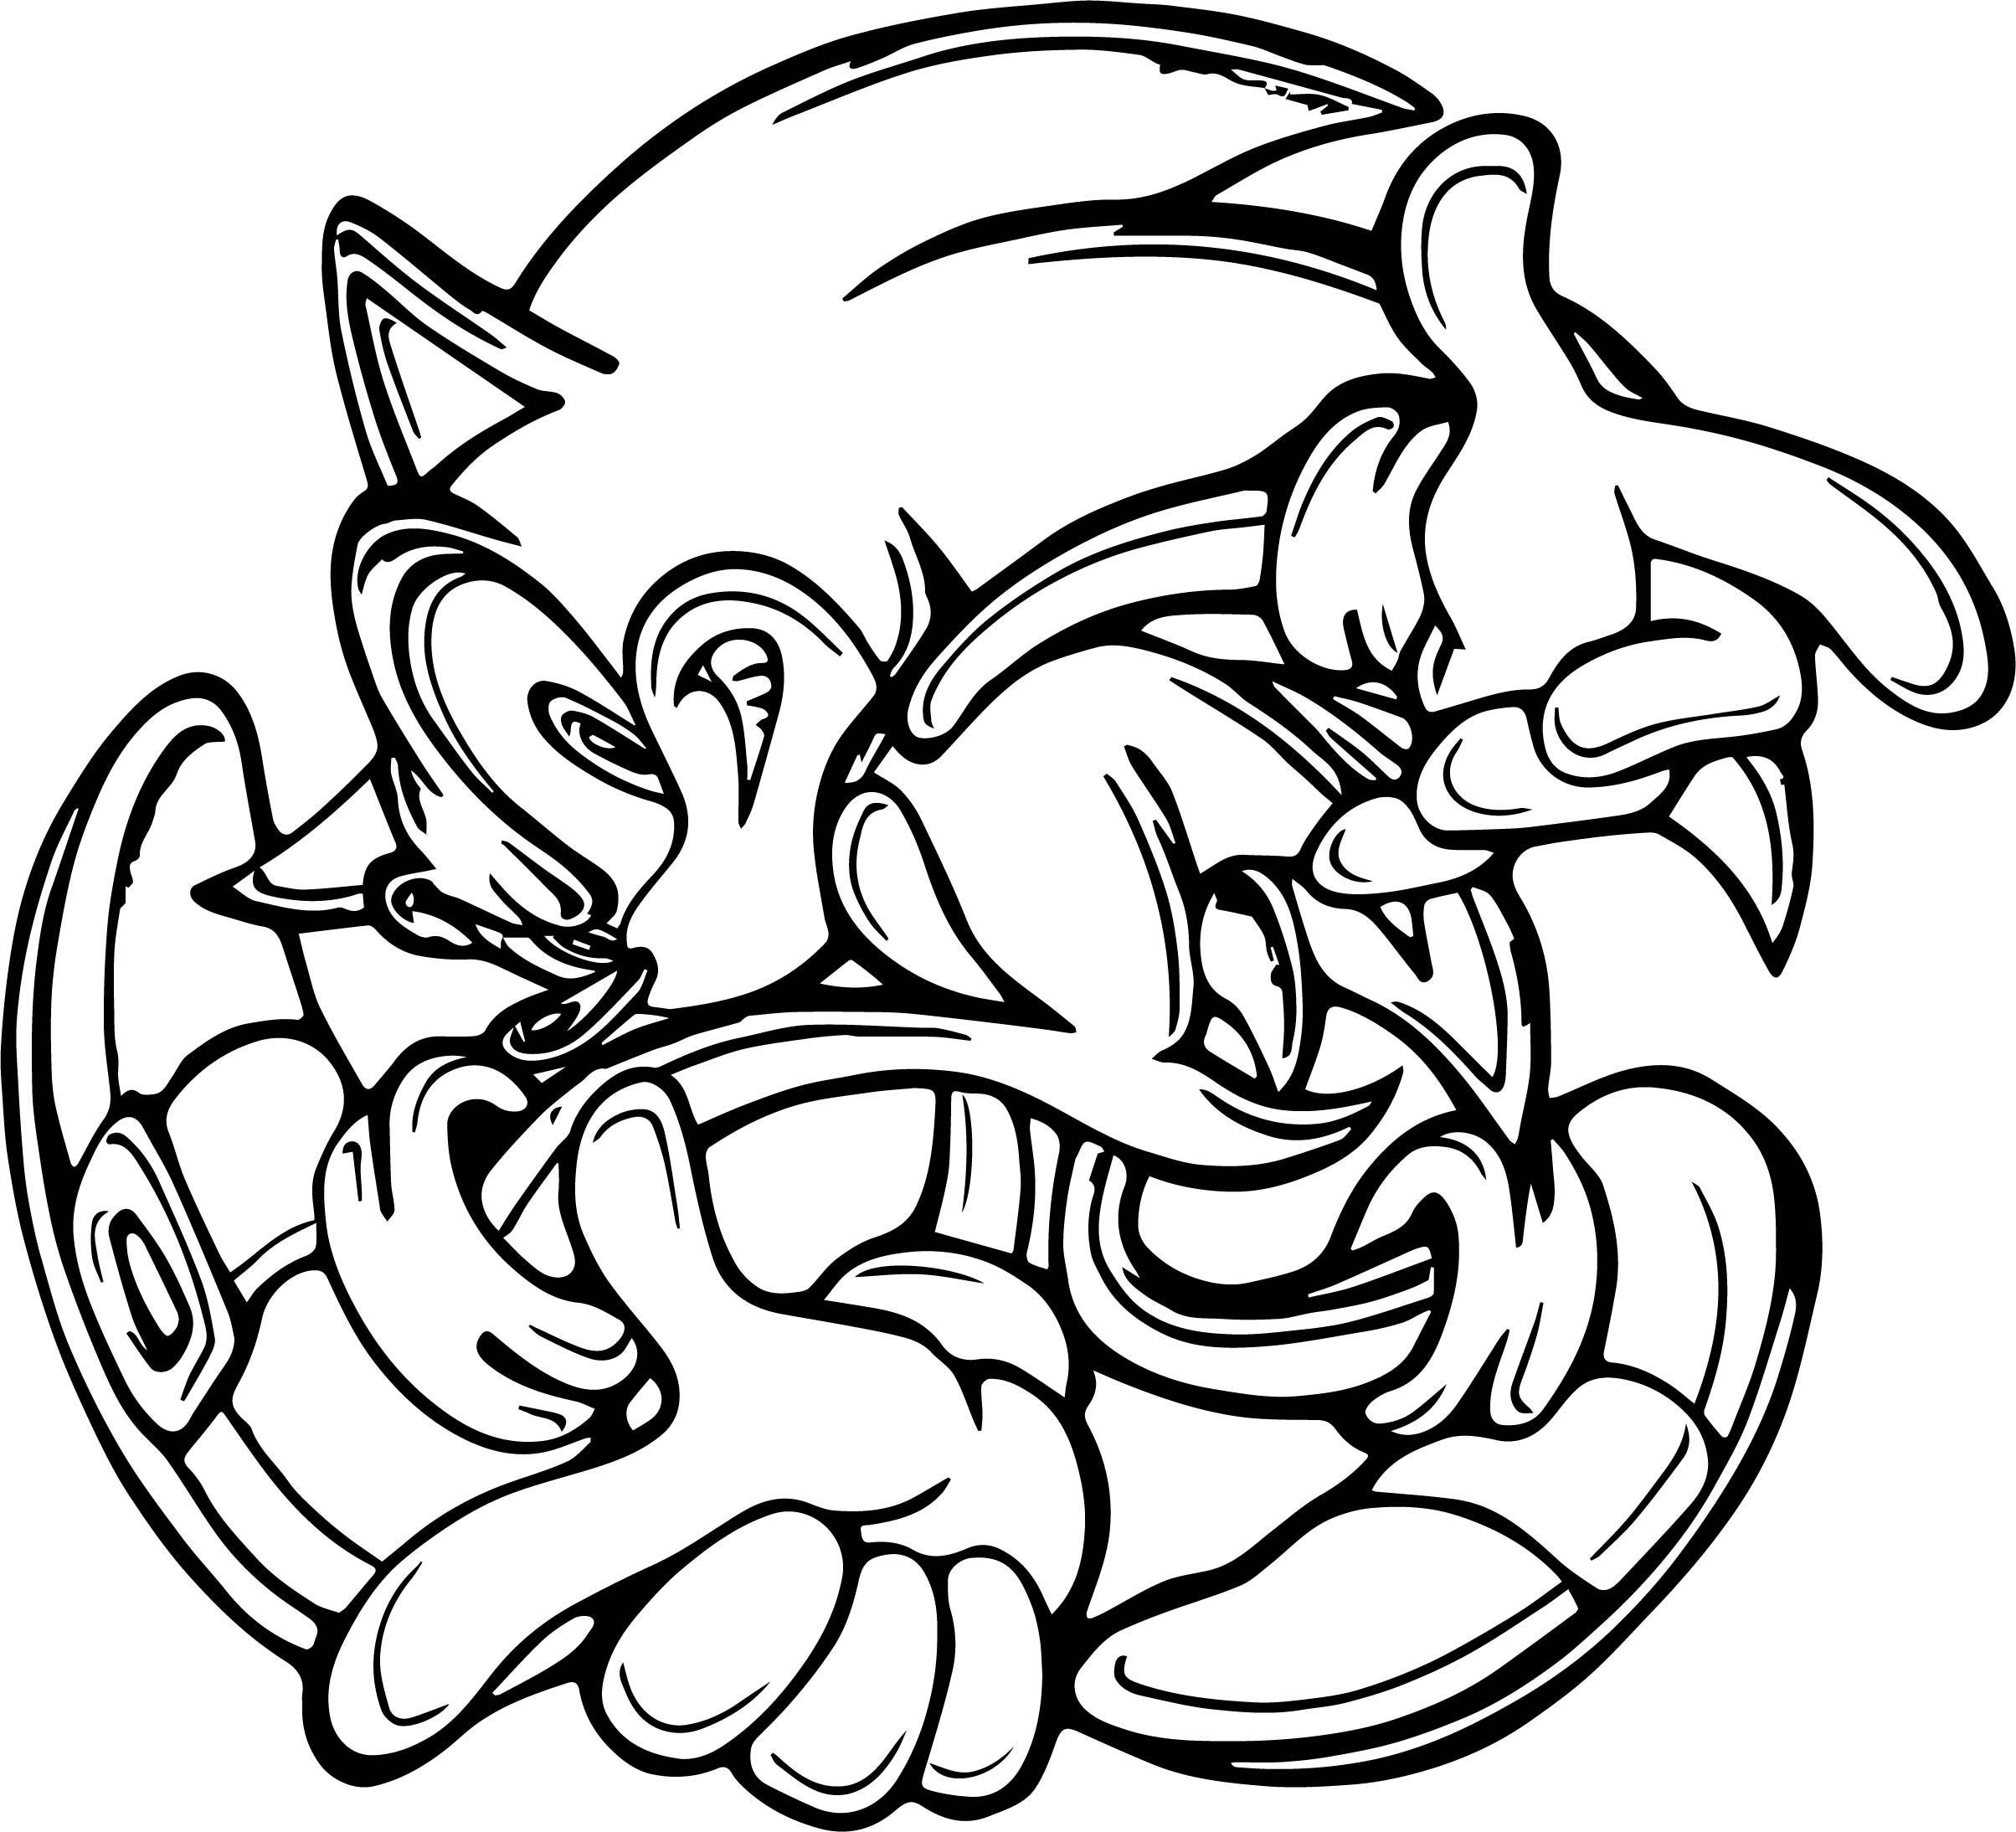 Sonic The Hedgehog Coloring Page WeColoringPage 010